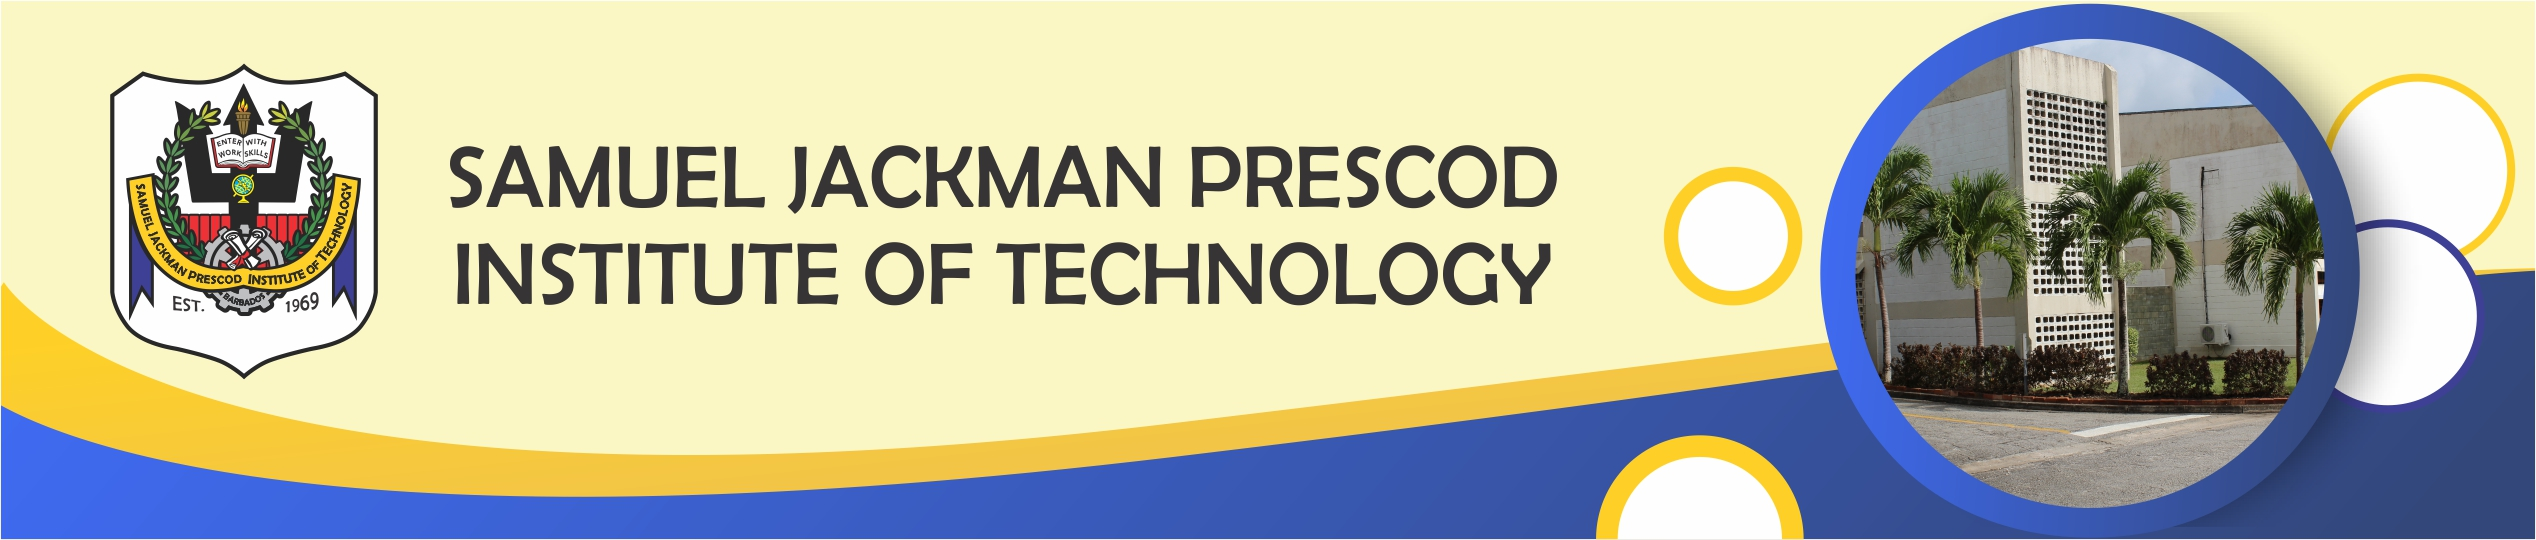 Samuel Jackman Prescod Institute of Technology